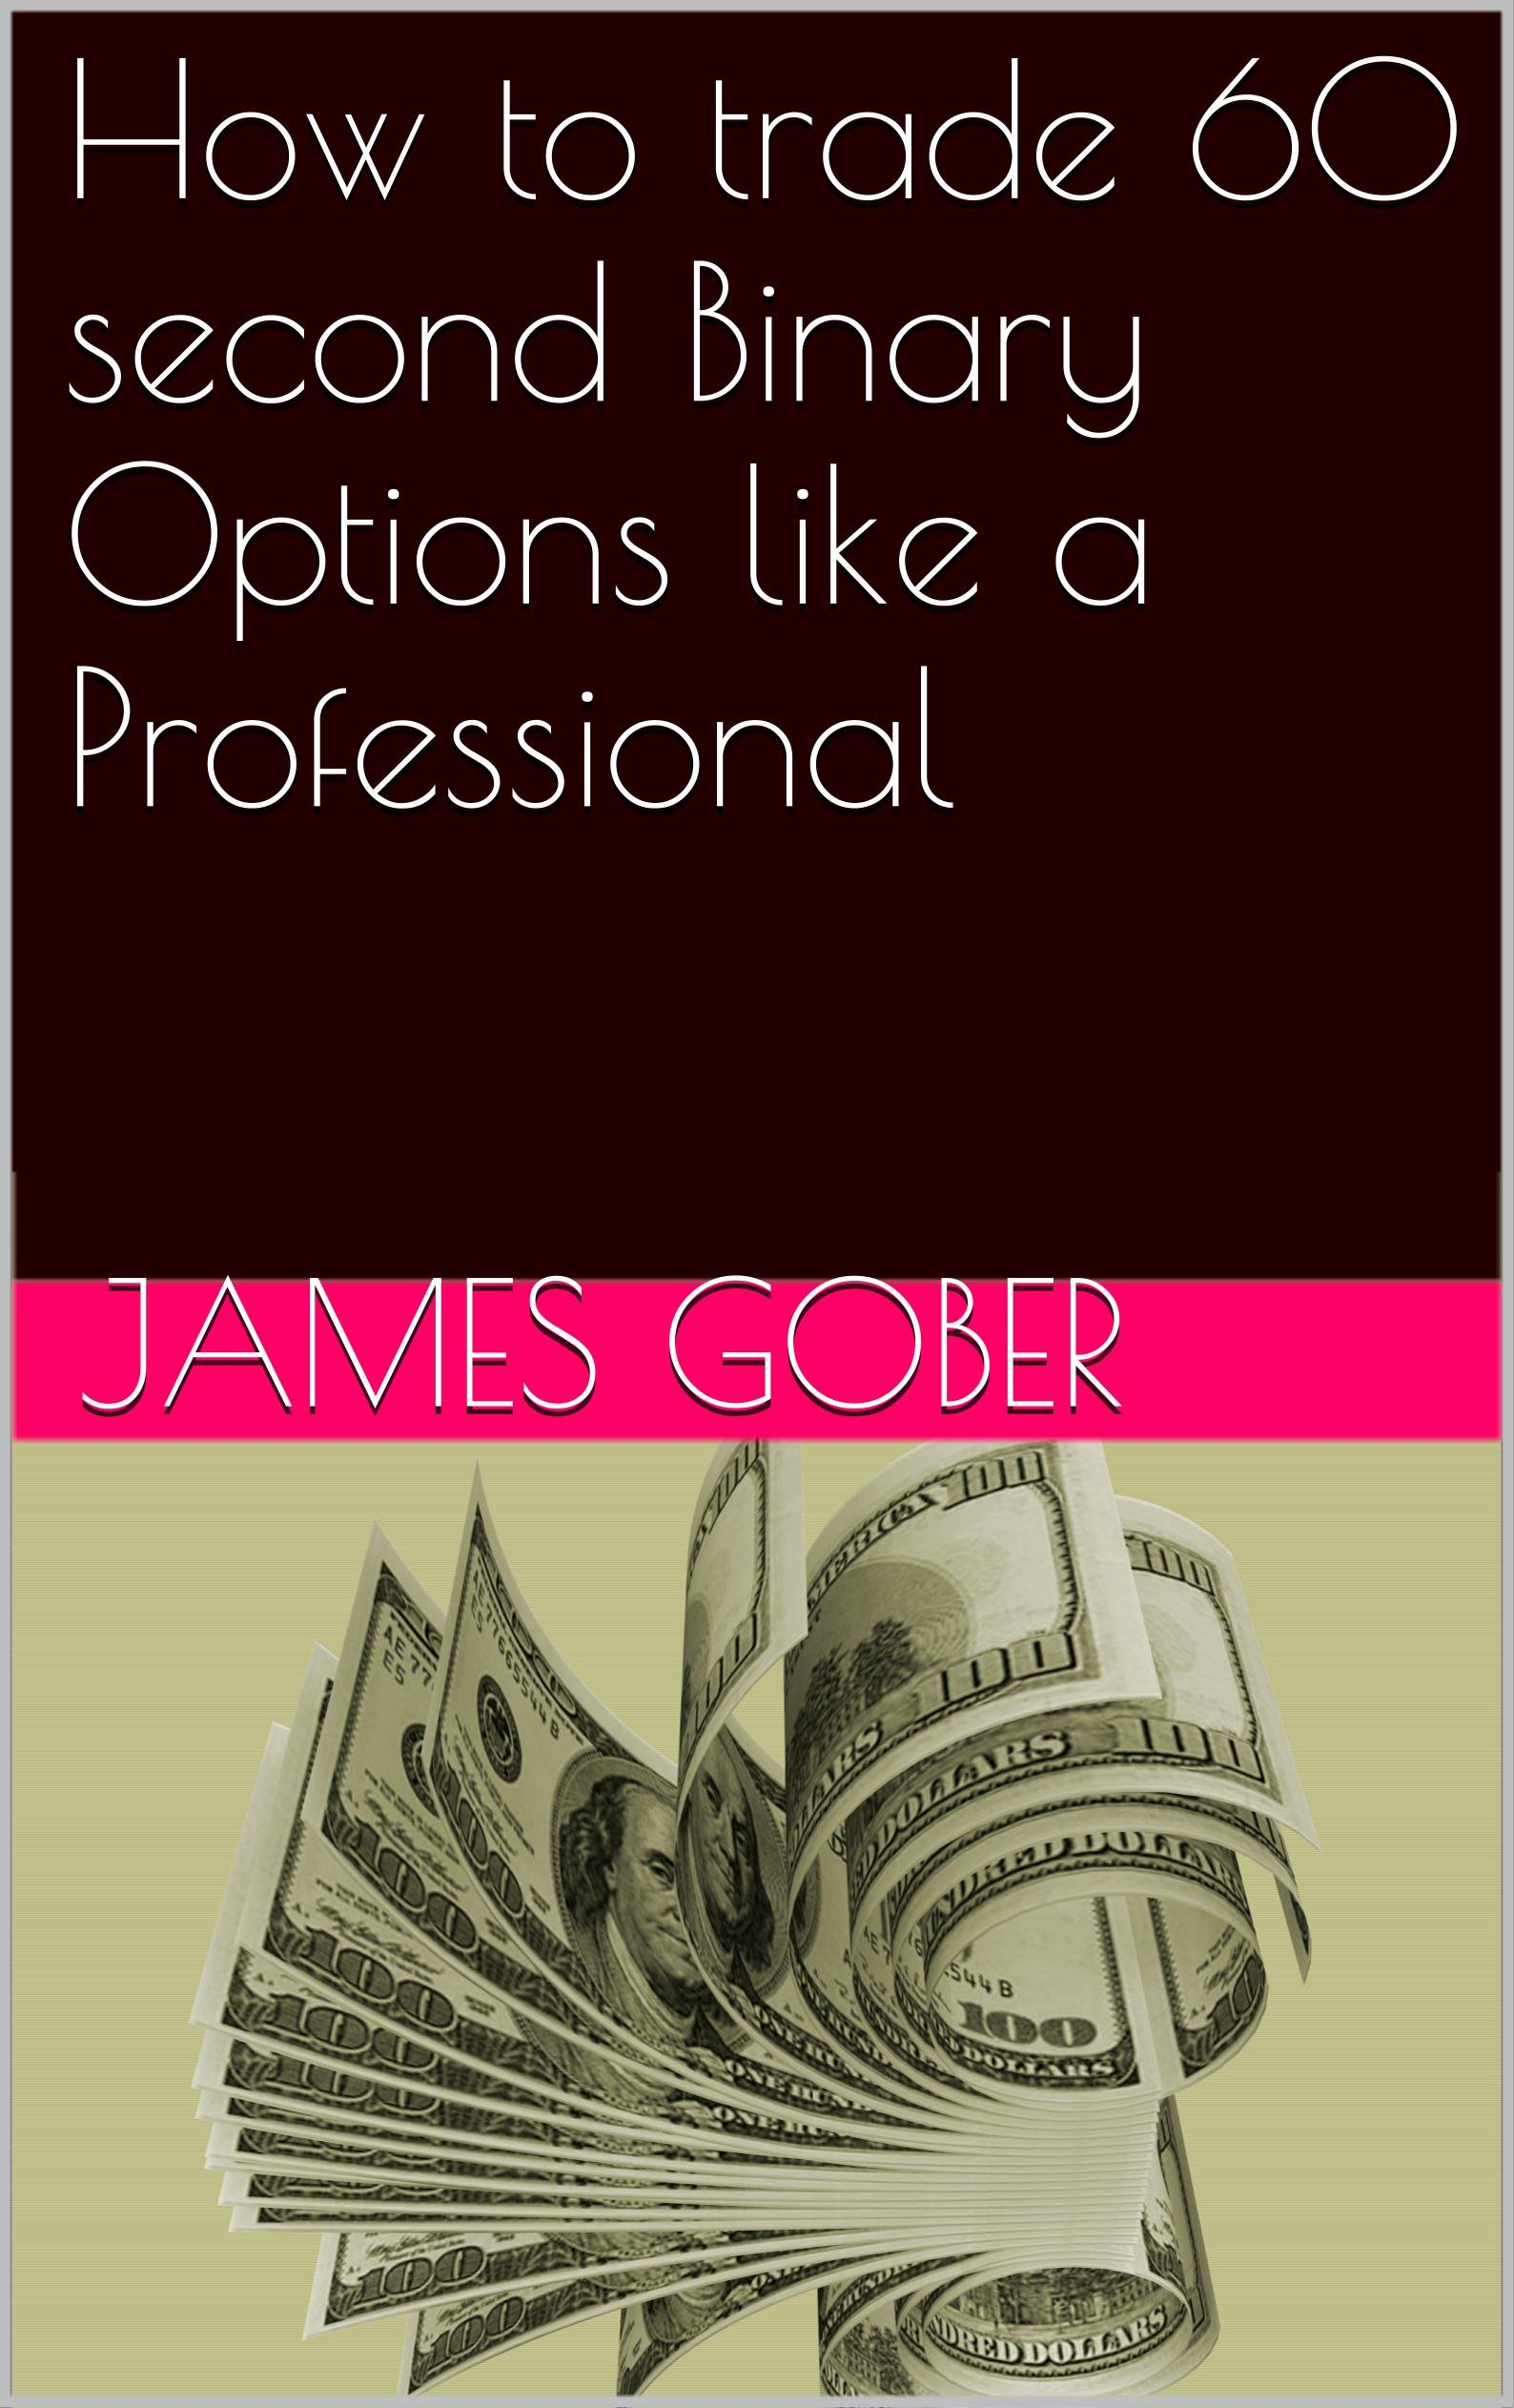 Free options trading book